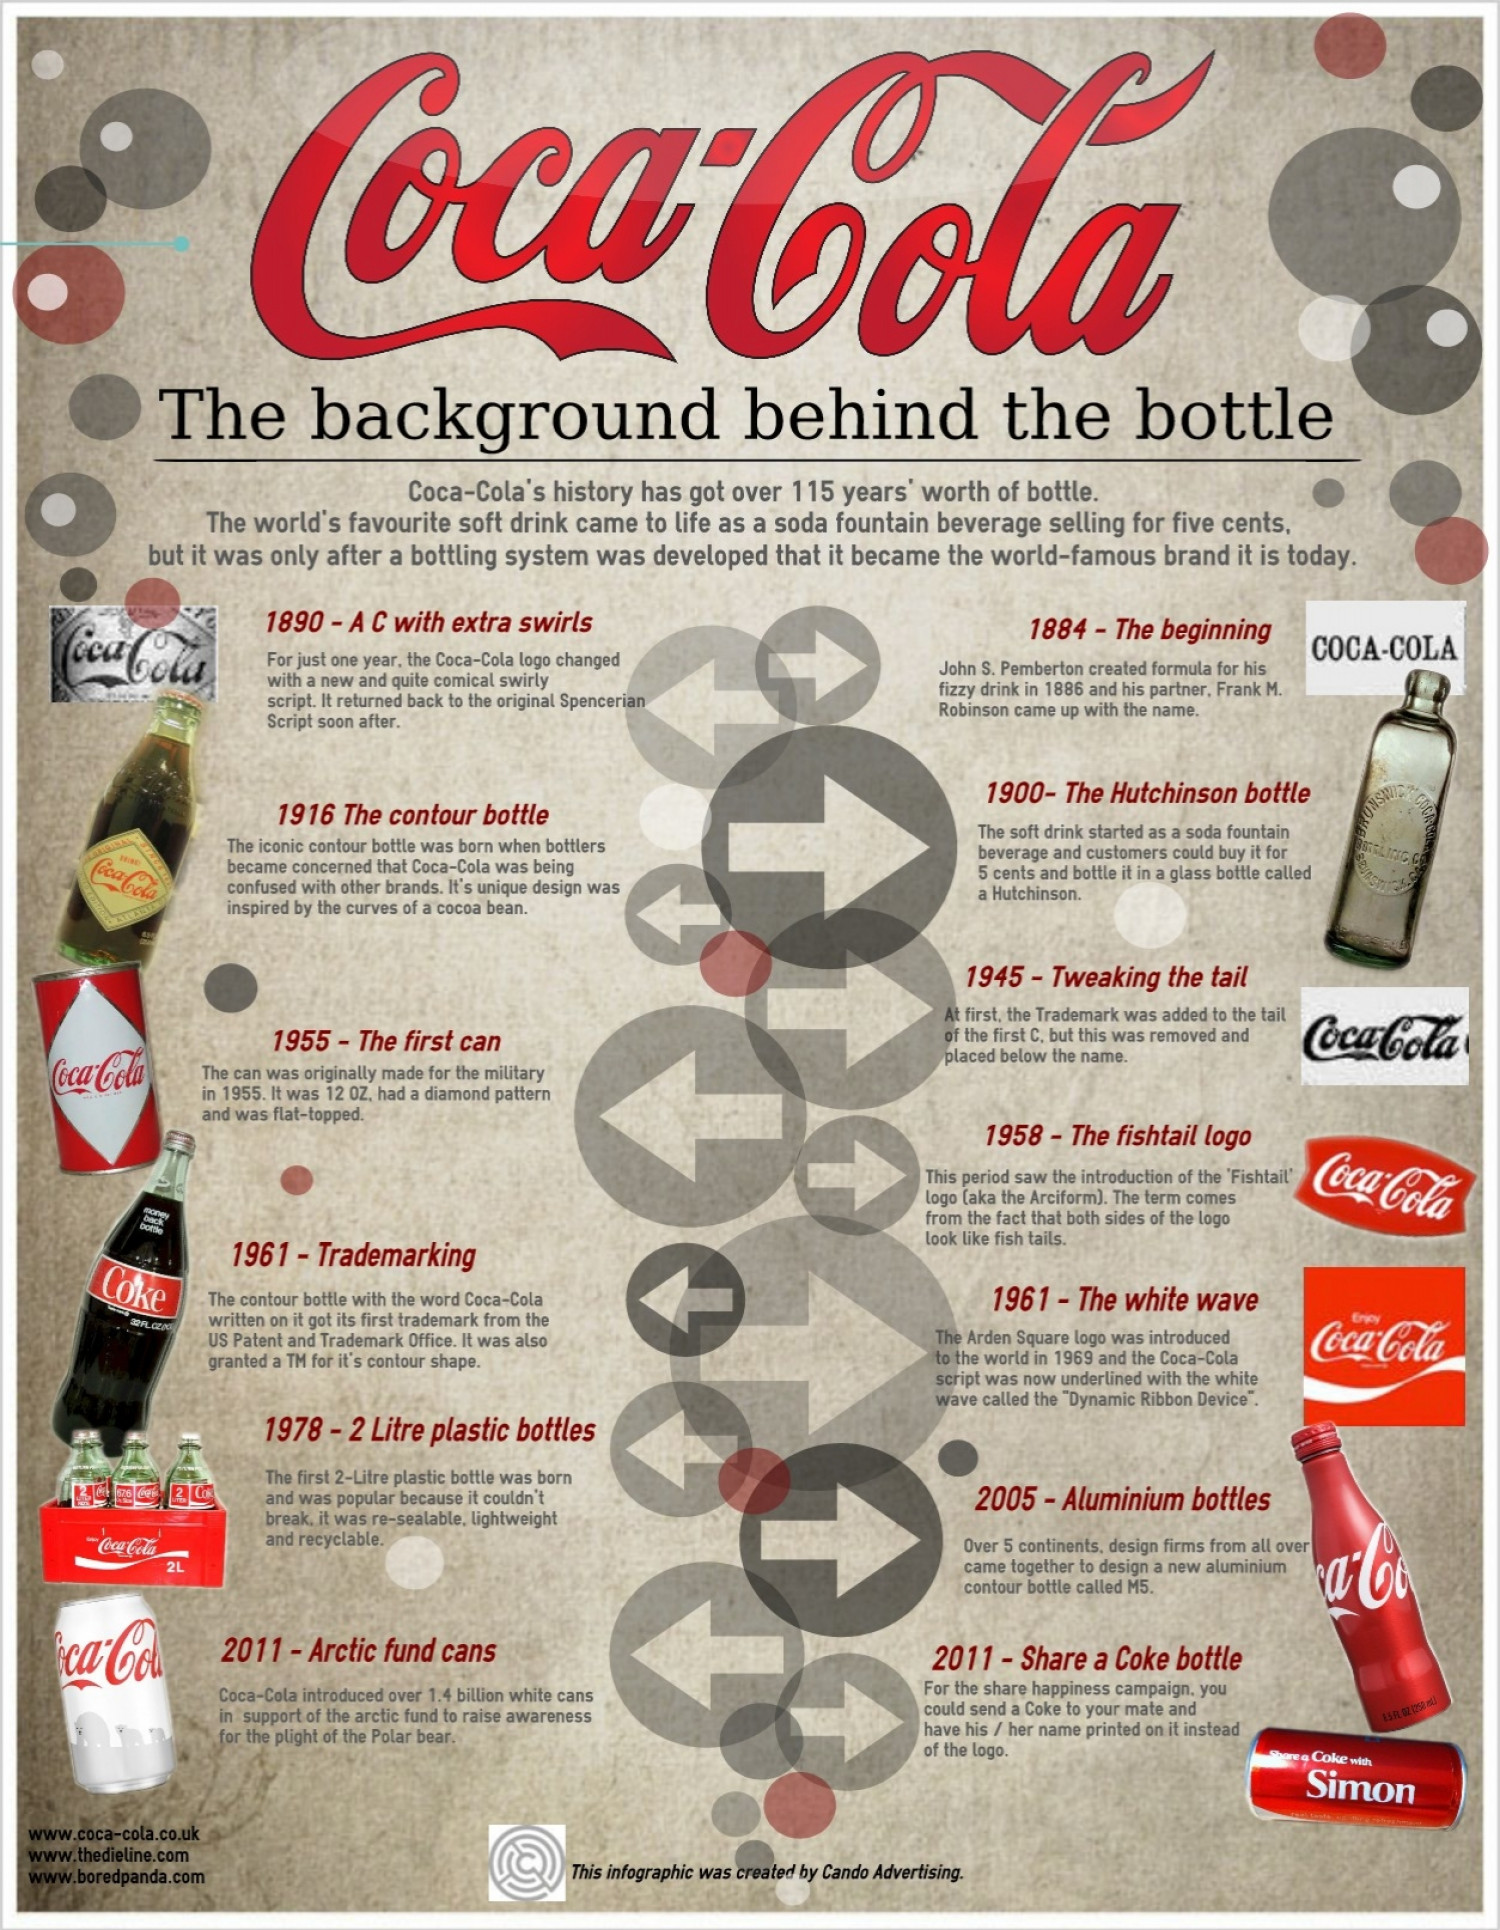 Coca-Cola - The Background Behind the Bottle Infographic